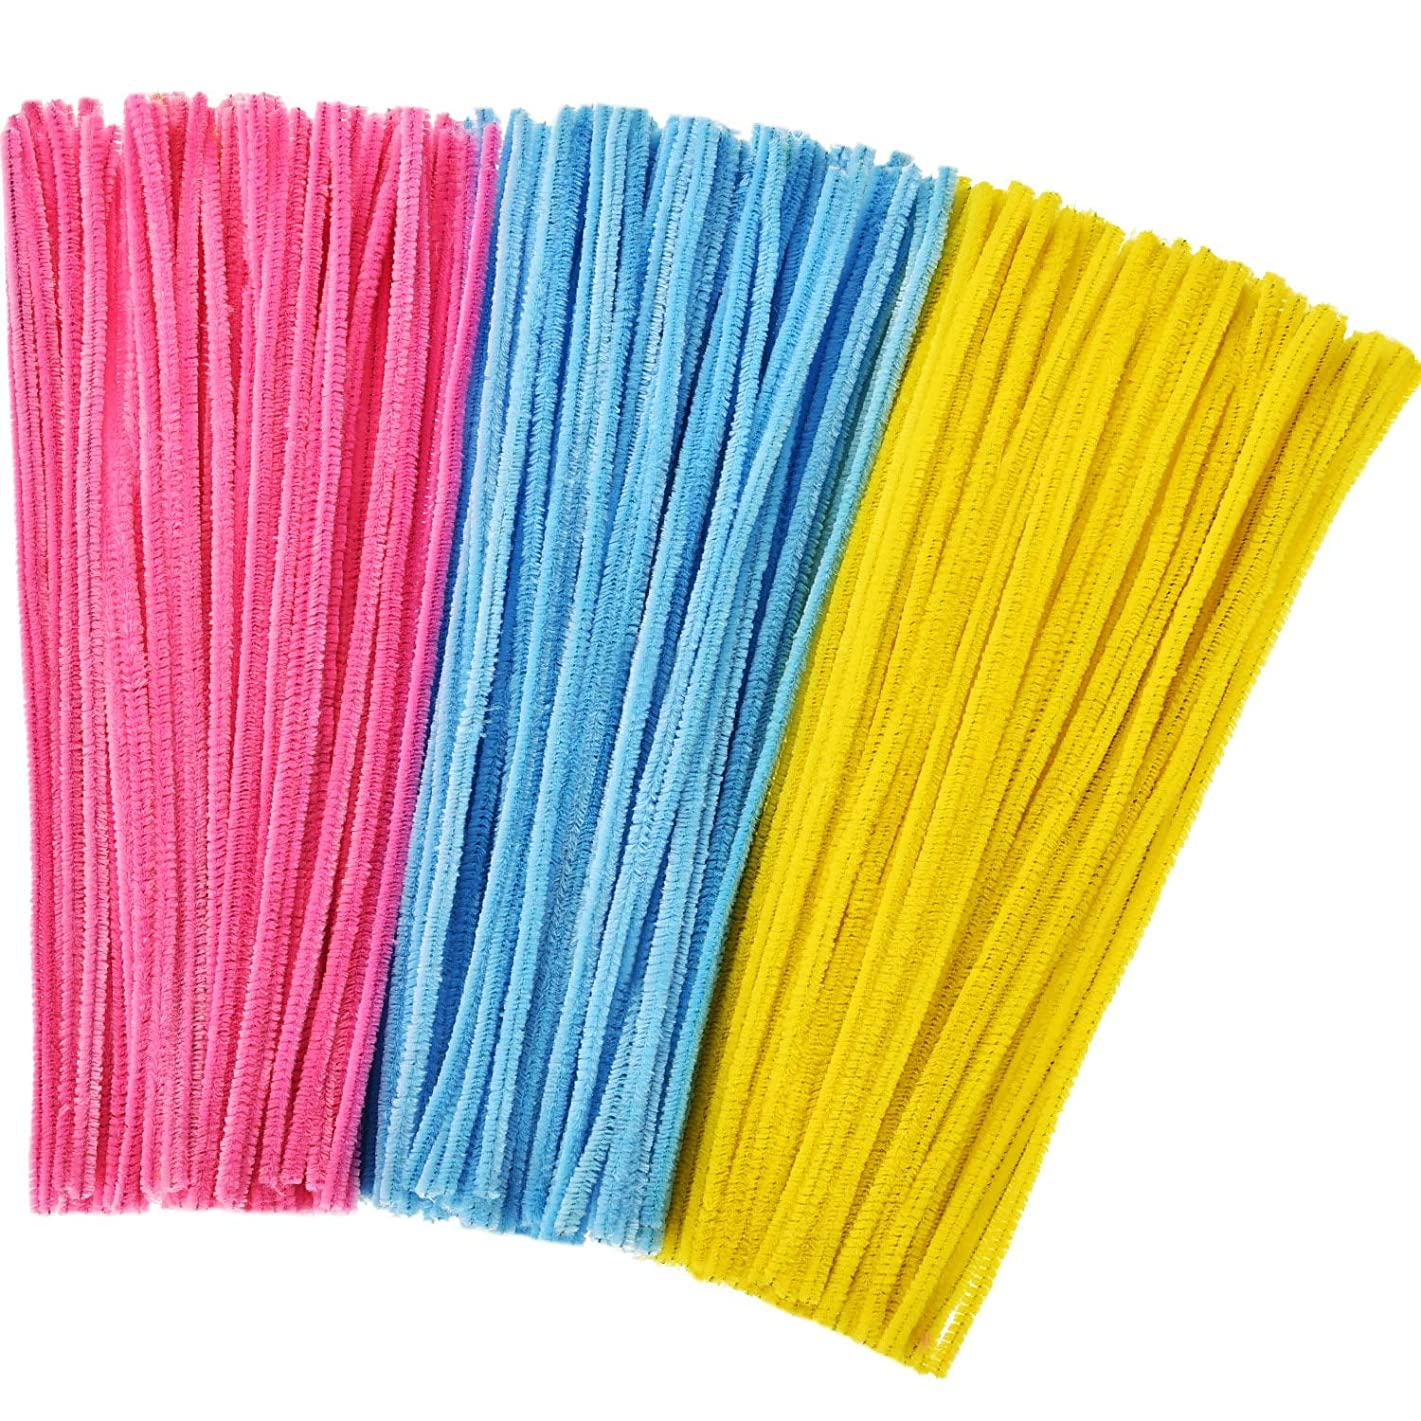 Tatuo 300 Pieces Easter Chenille Stems 12 Inches by 6 mm Pipe Cleaners DIY Art Craft Supplies Decorations (Pink, Yellow and Blue)